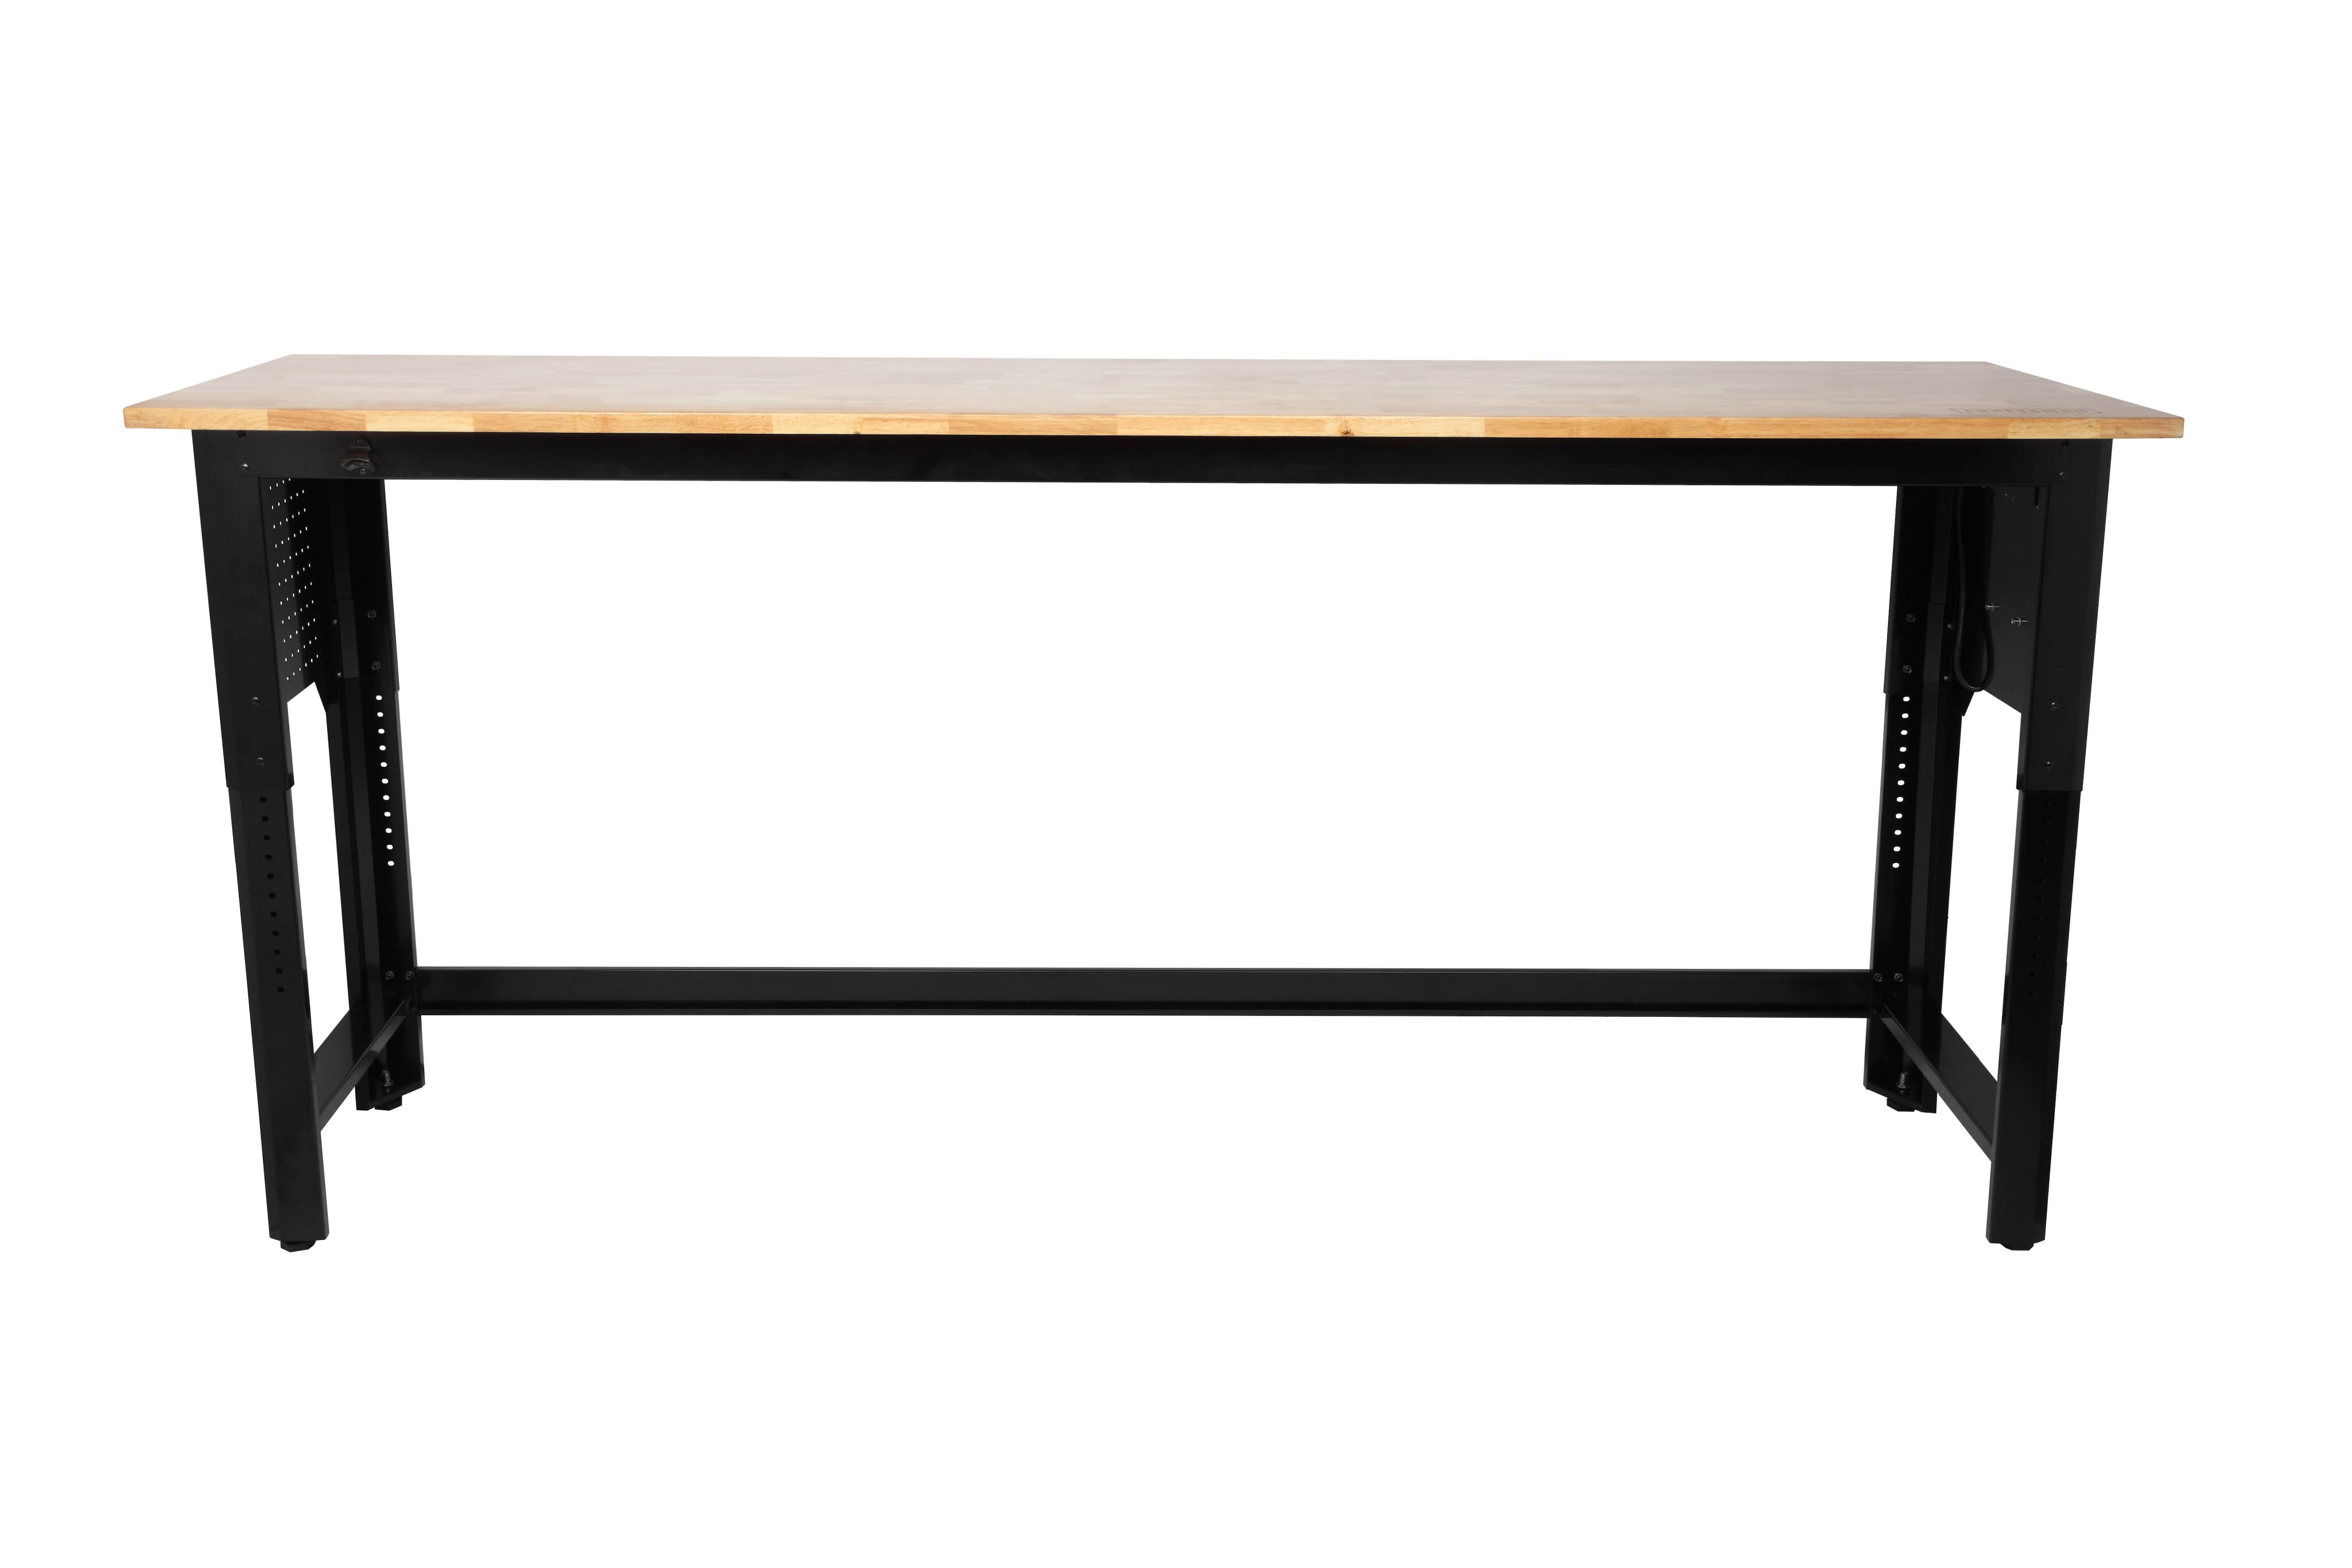 Tremendous 96 Craftsman Adjustable Height Workbench 100 In Points 4 Installment Expired Camellatalisay Diy Chair Ideas Camellatalisaycom